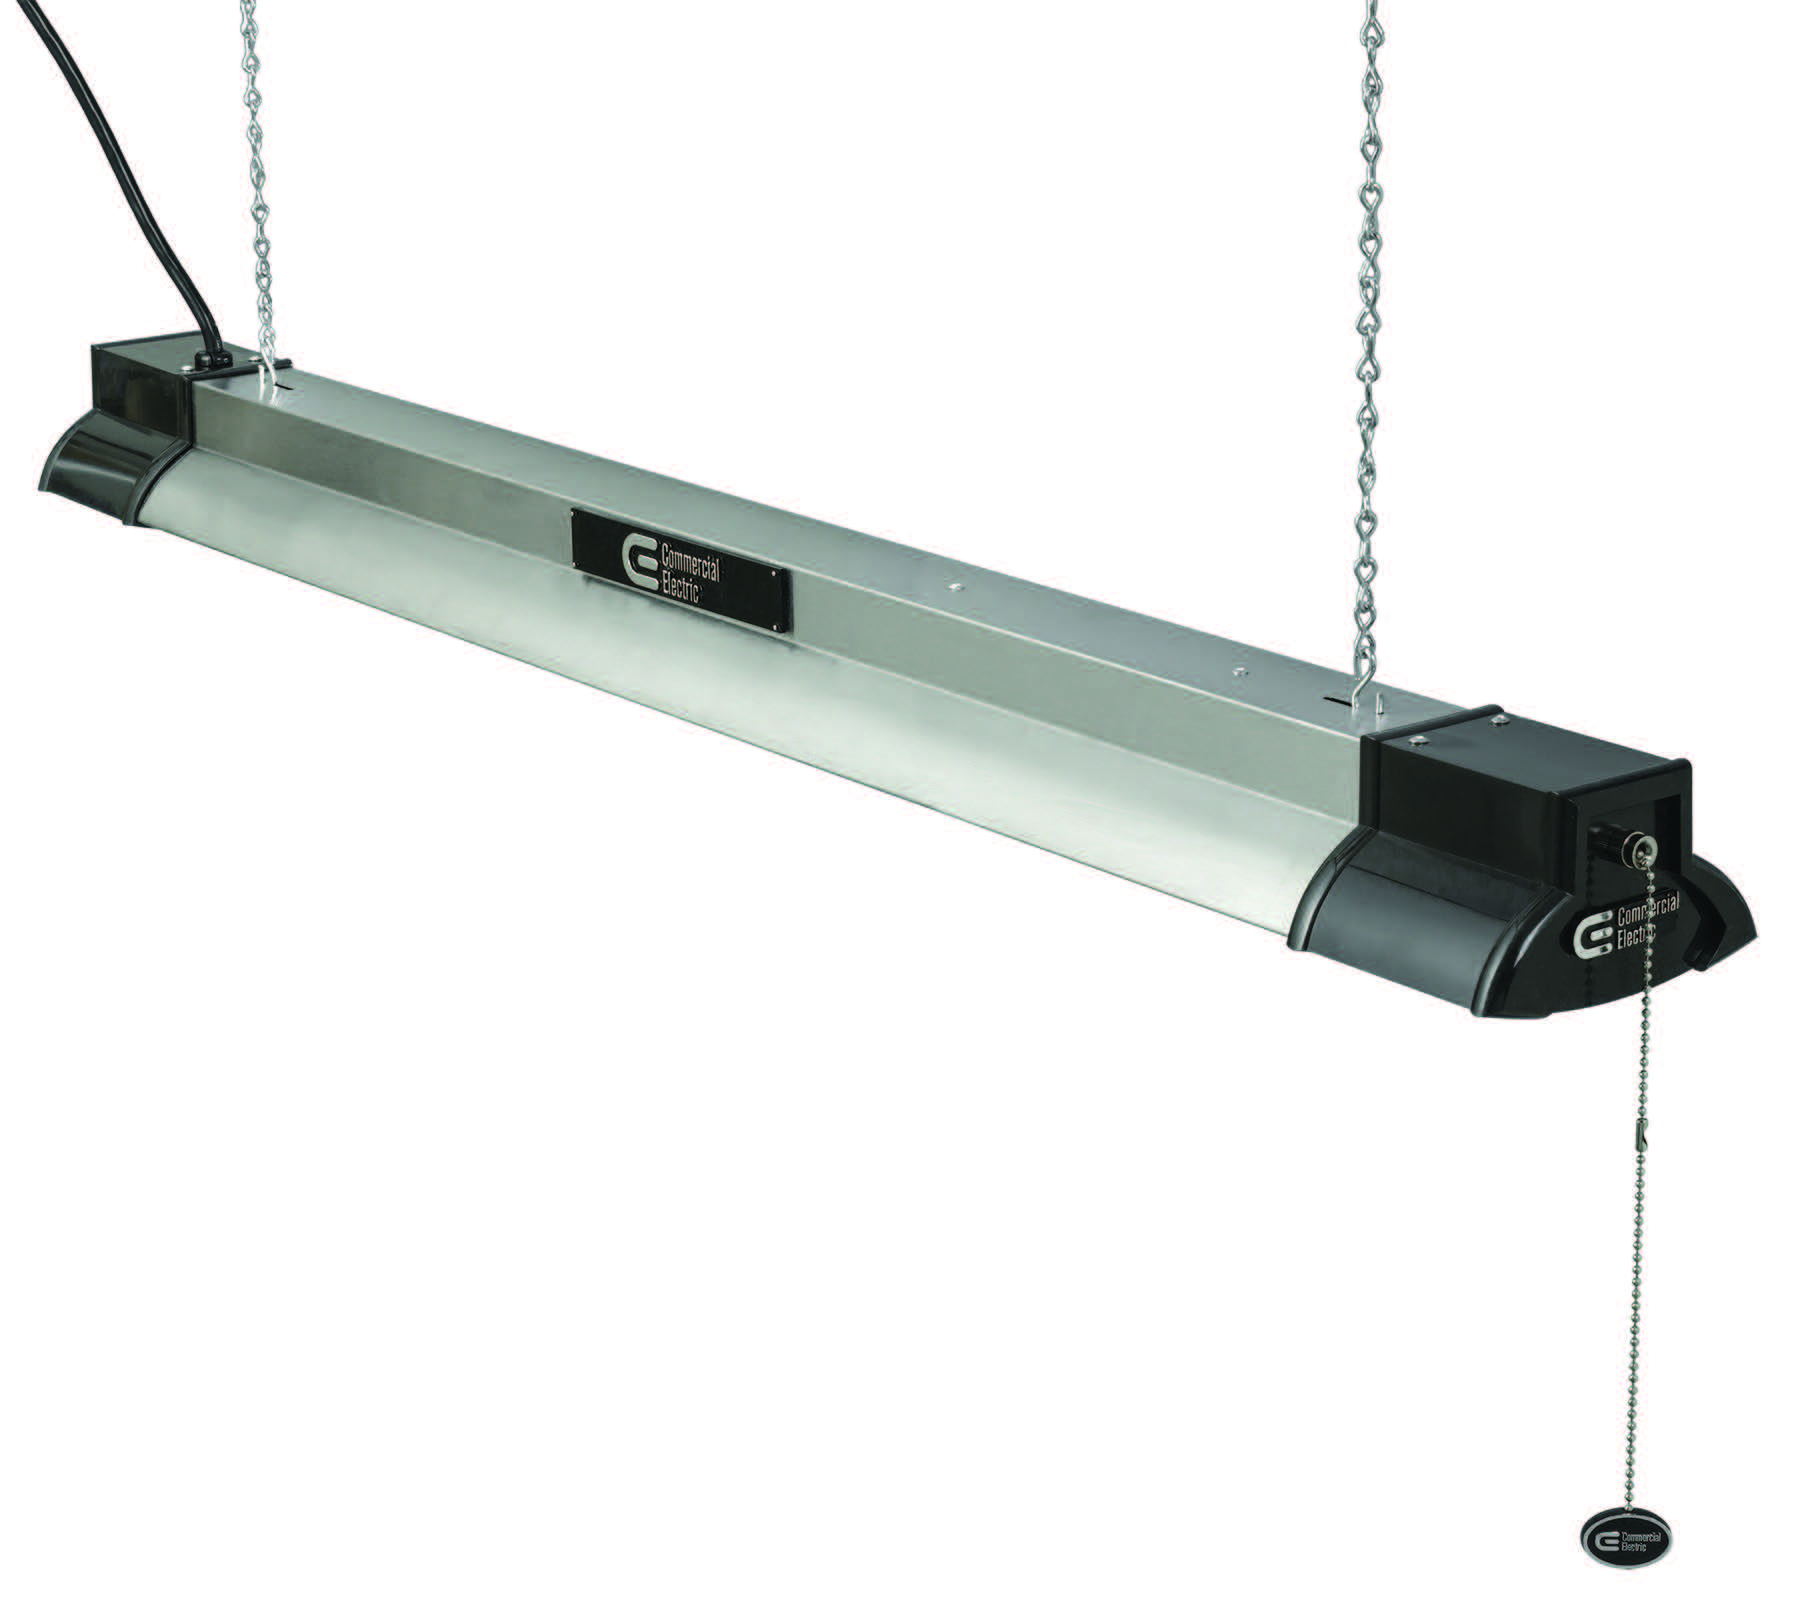 ETI Solid State Lighting Introduces Nickel Finish 40in